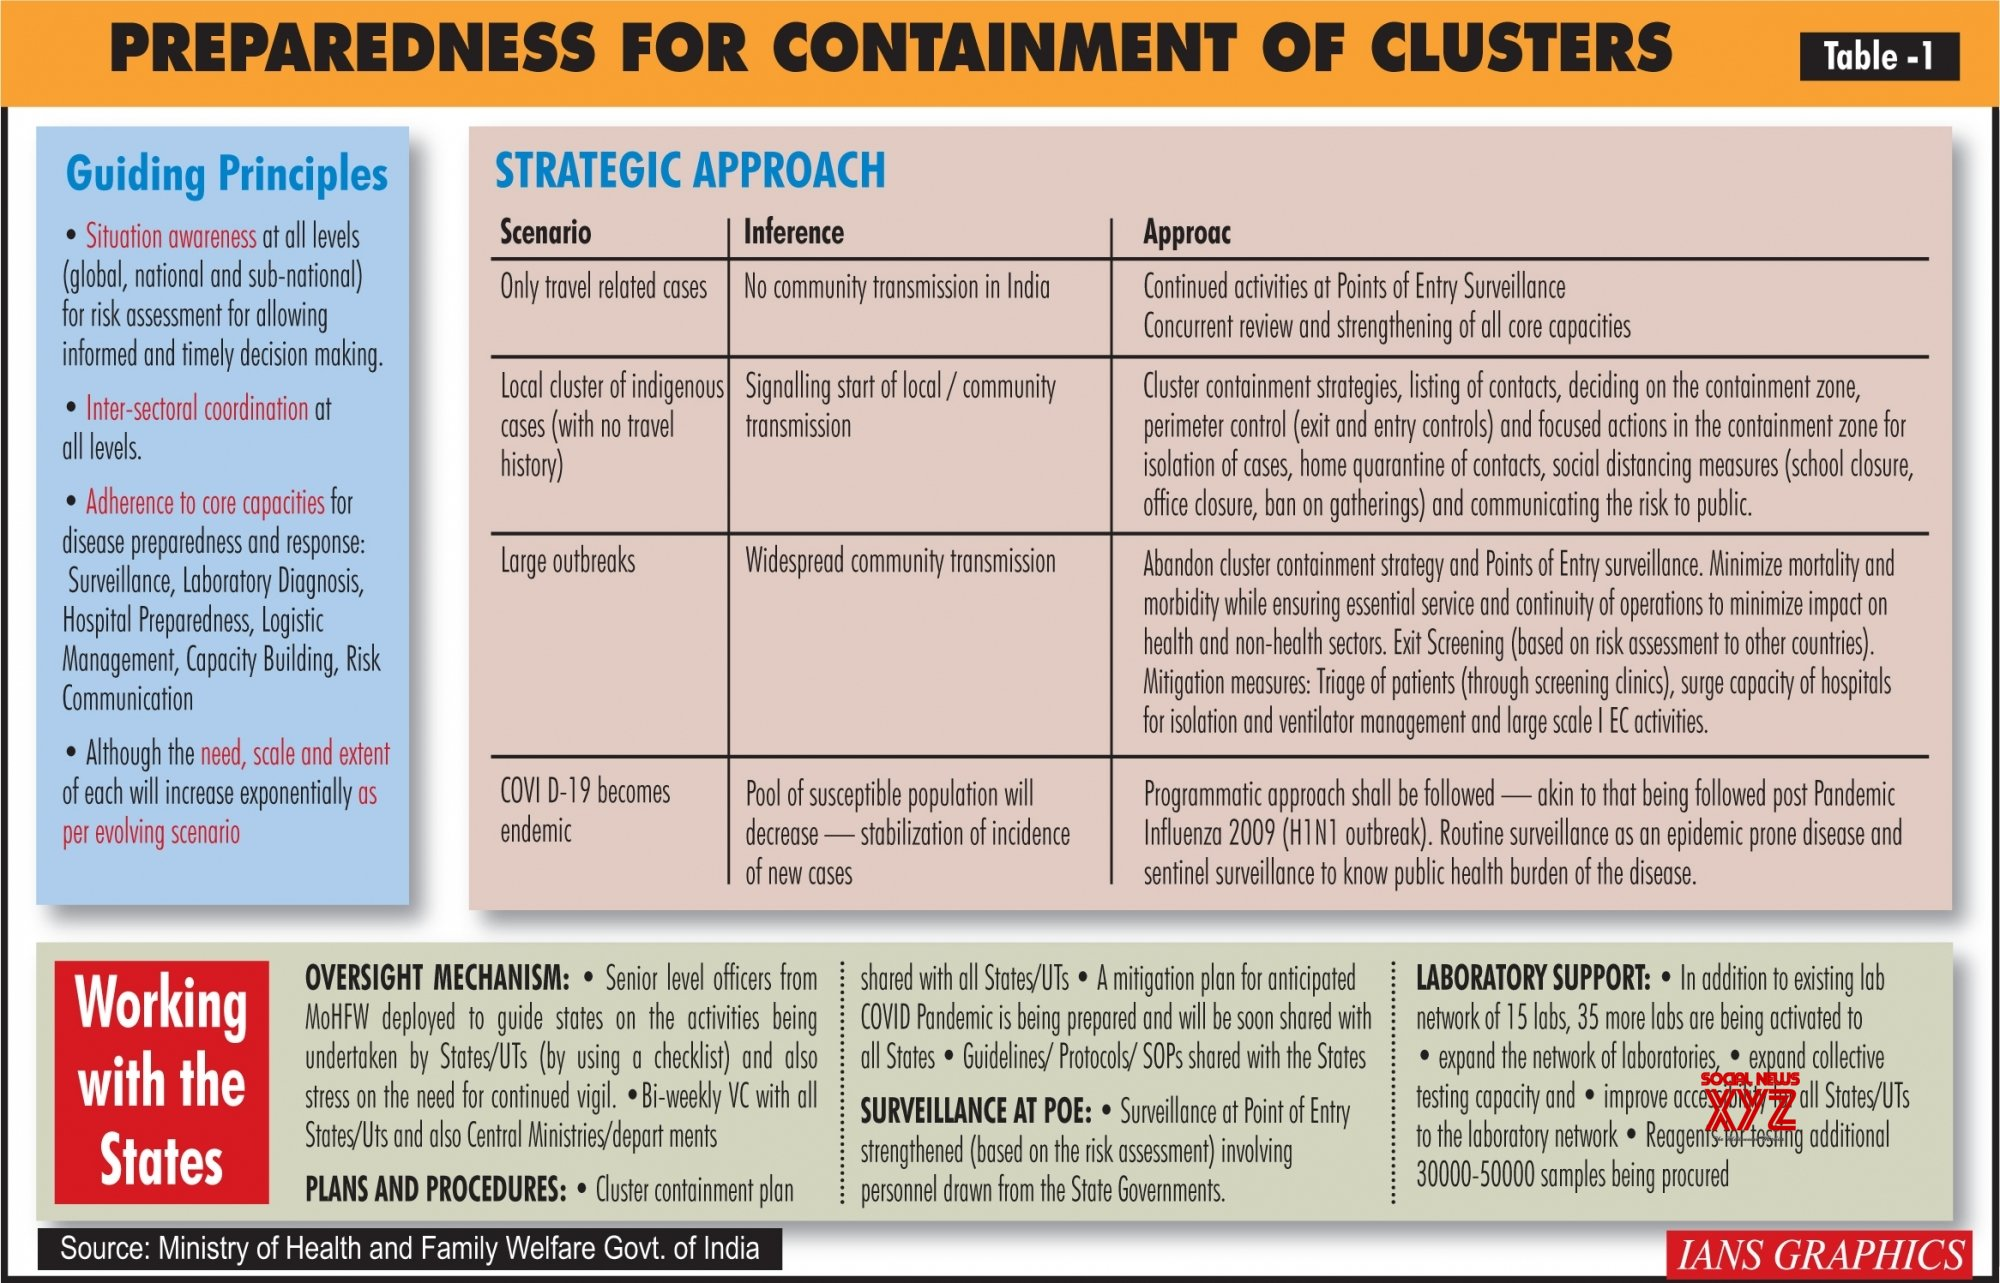 Infographics: Contingency plan for COVID - 19 to follow H1N1 pandemic strategy #Gallery